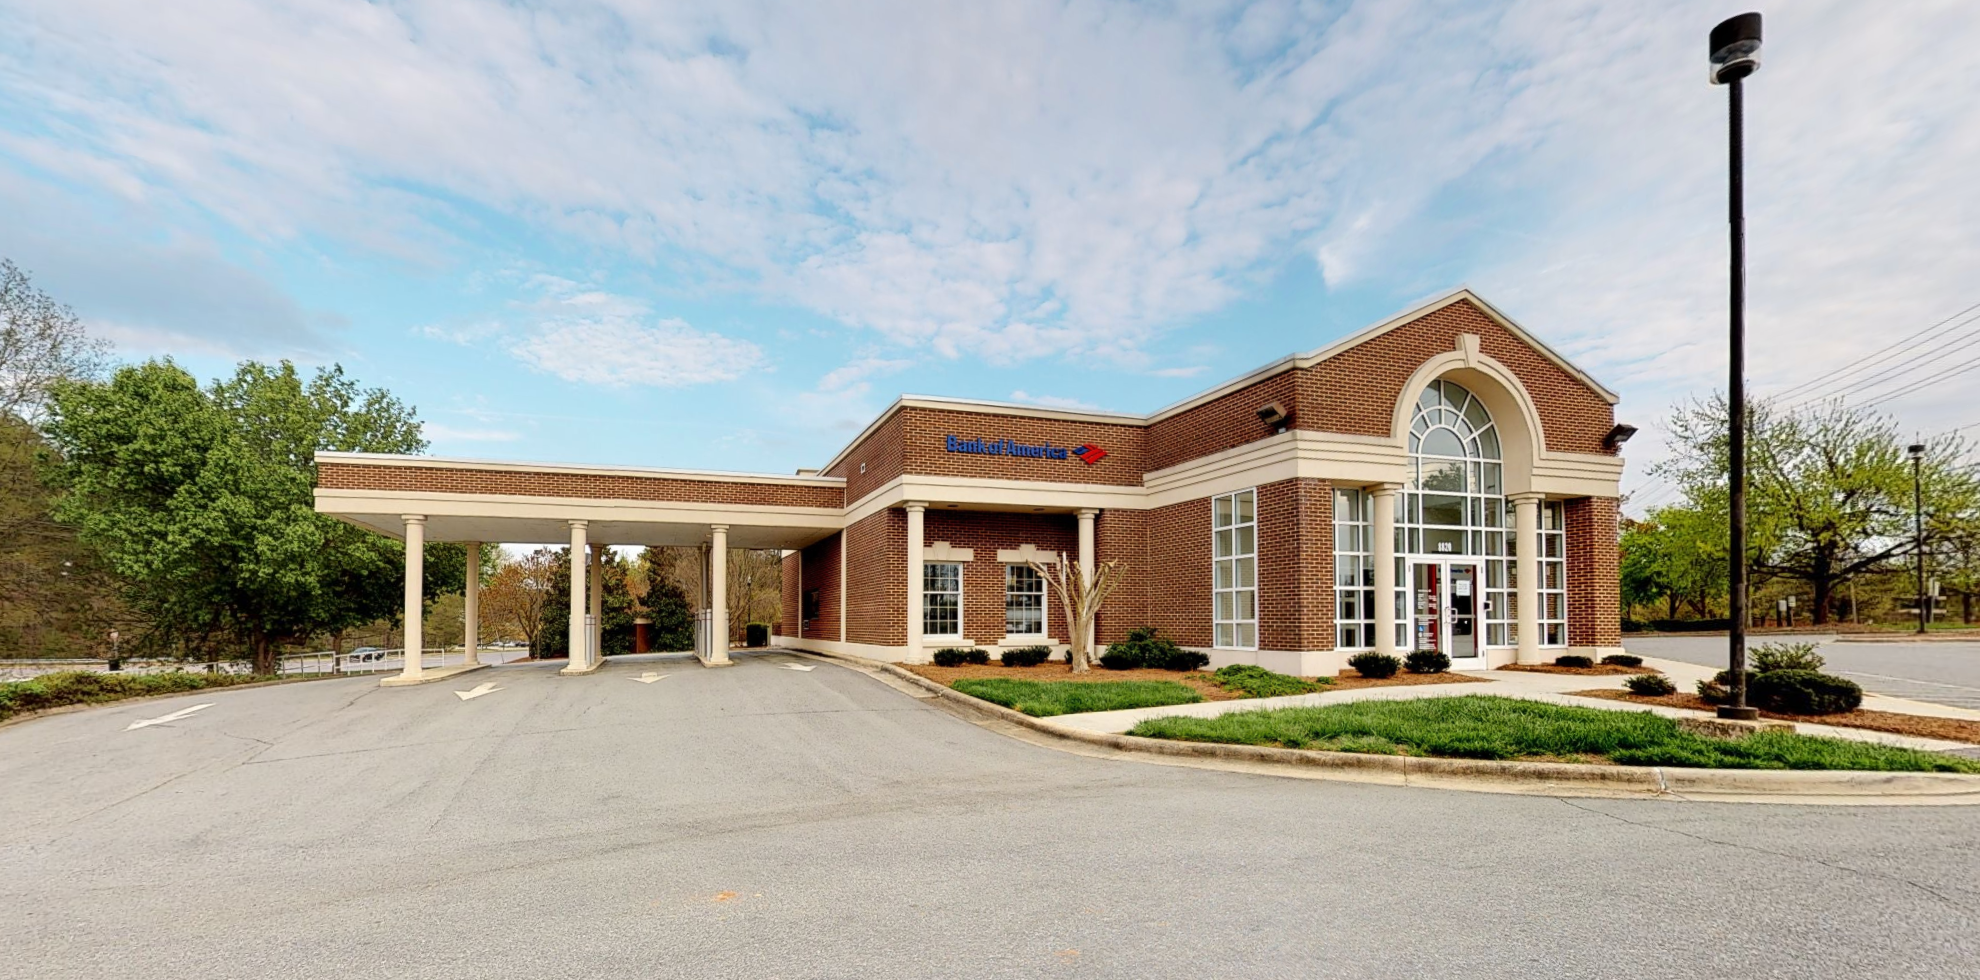 Bank of America financial center with drive-thru ATM and teller   8820 Six Forks Rd, Raleigh, NC 27615